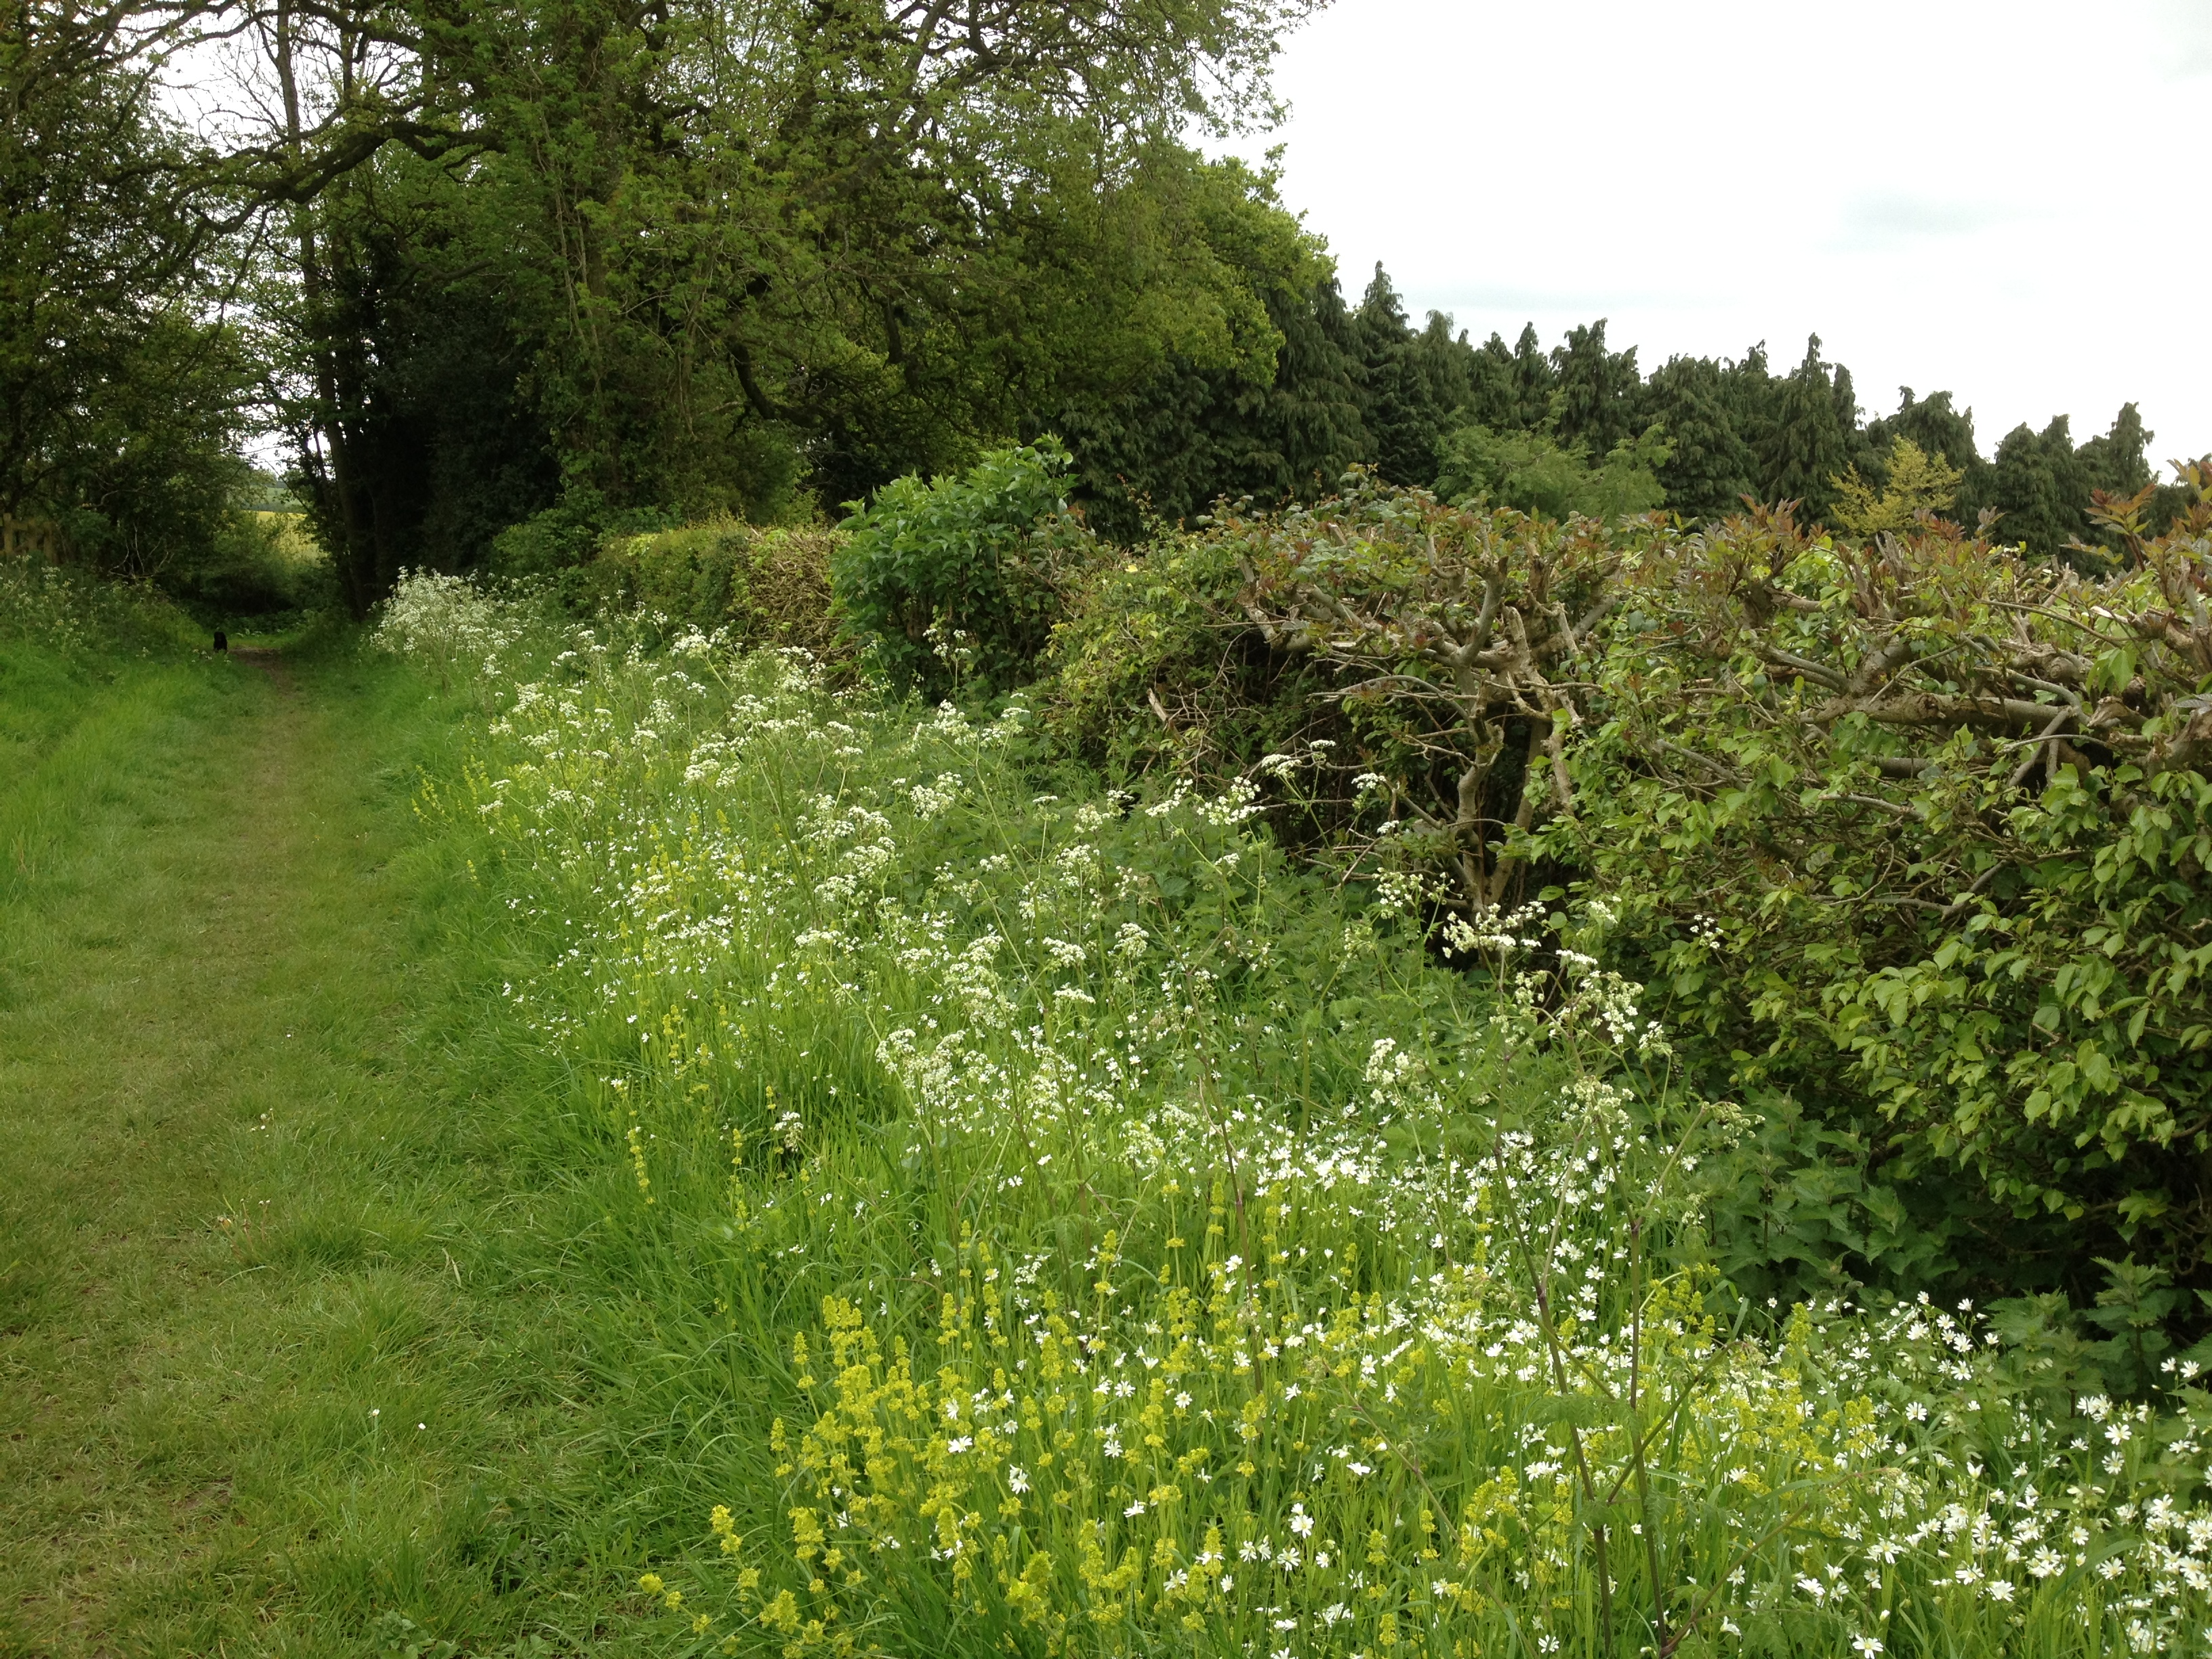 By the hedge IMG_0850